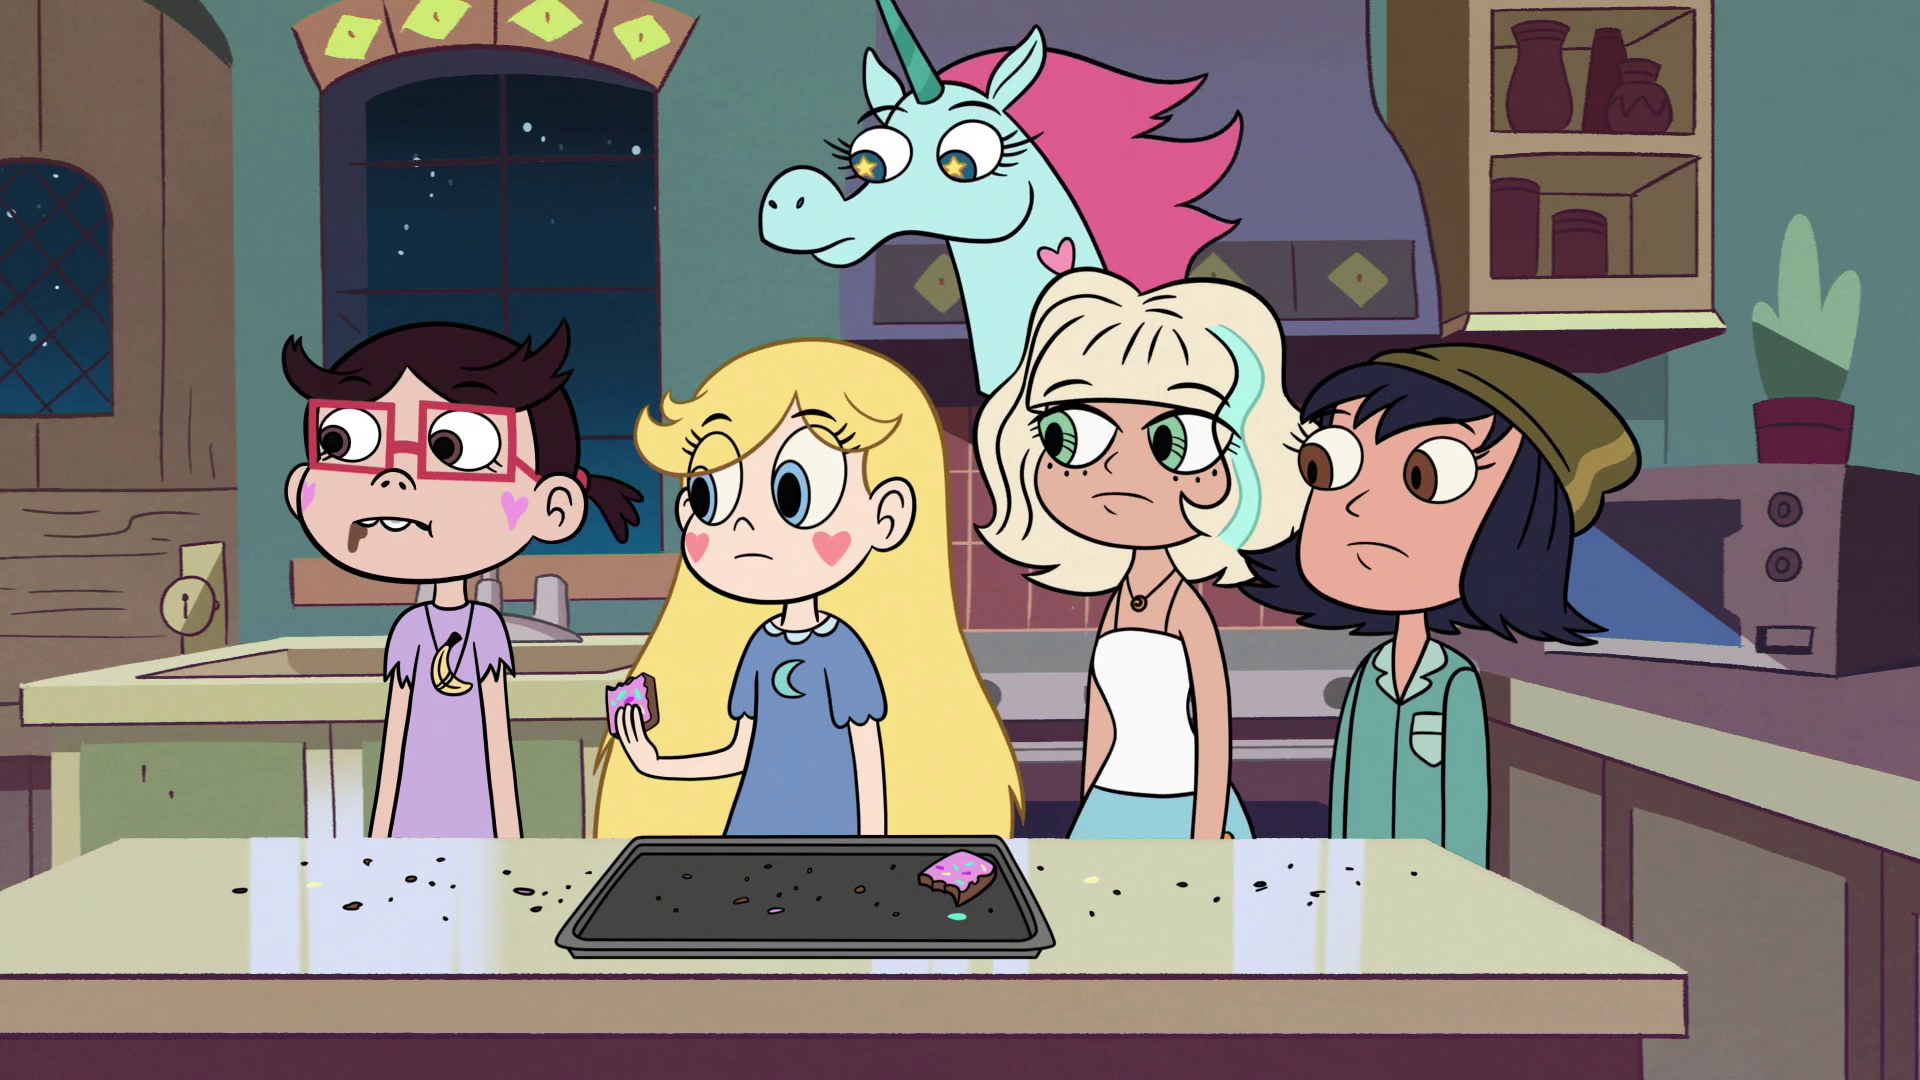 Star vs. the forces of evil between friends